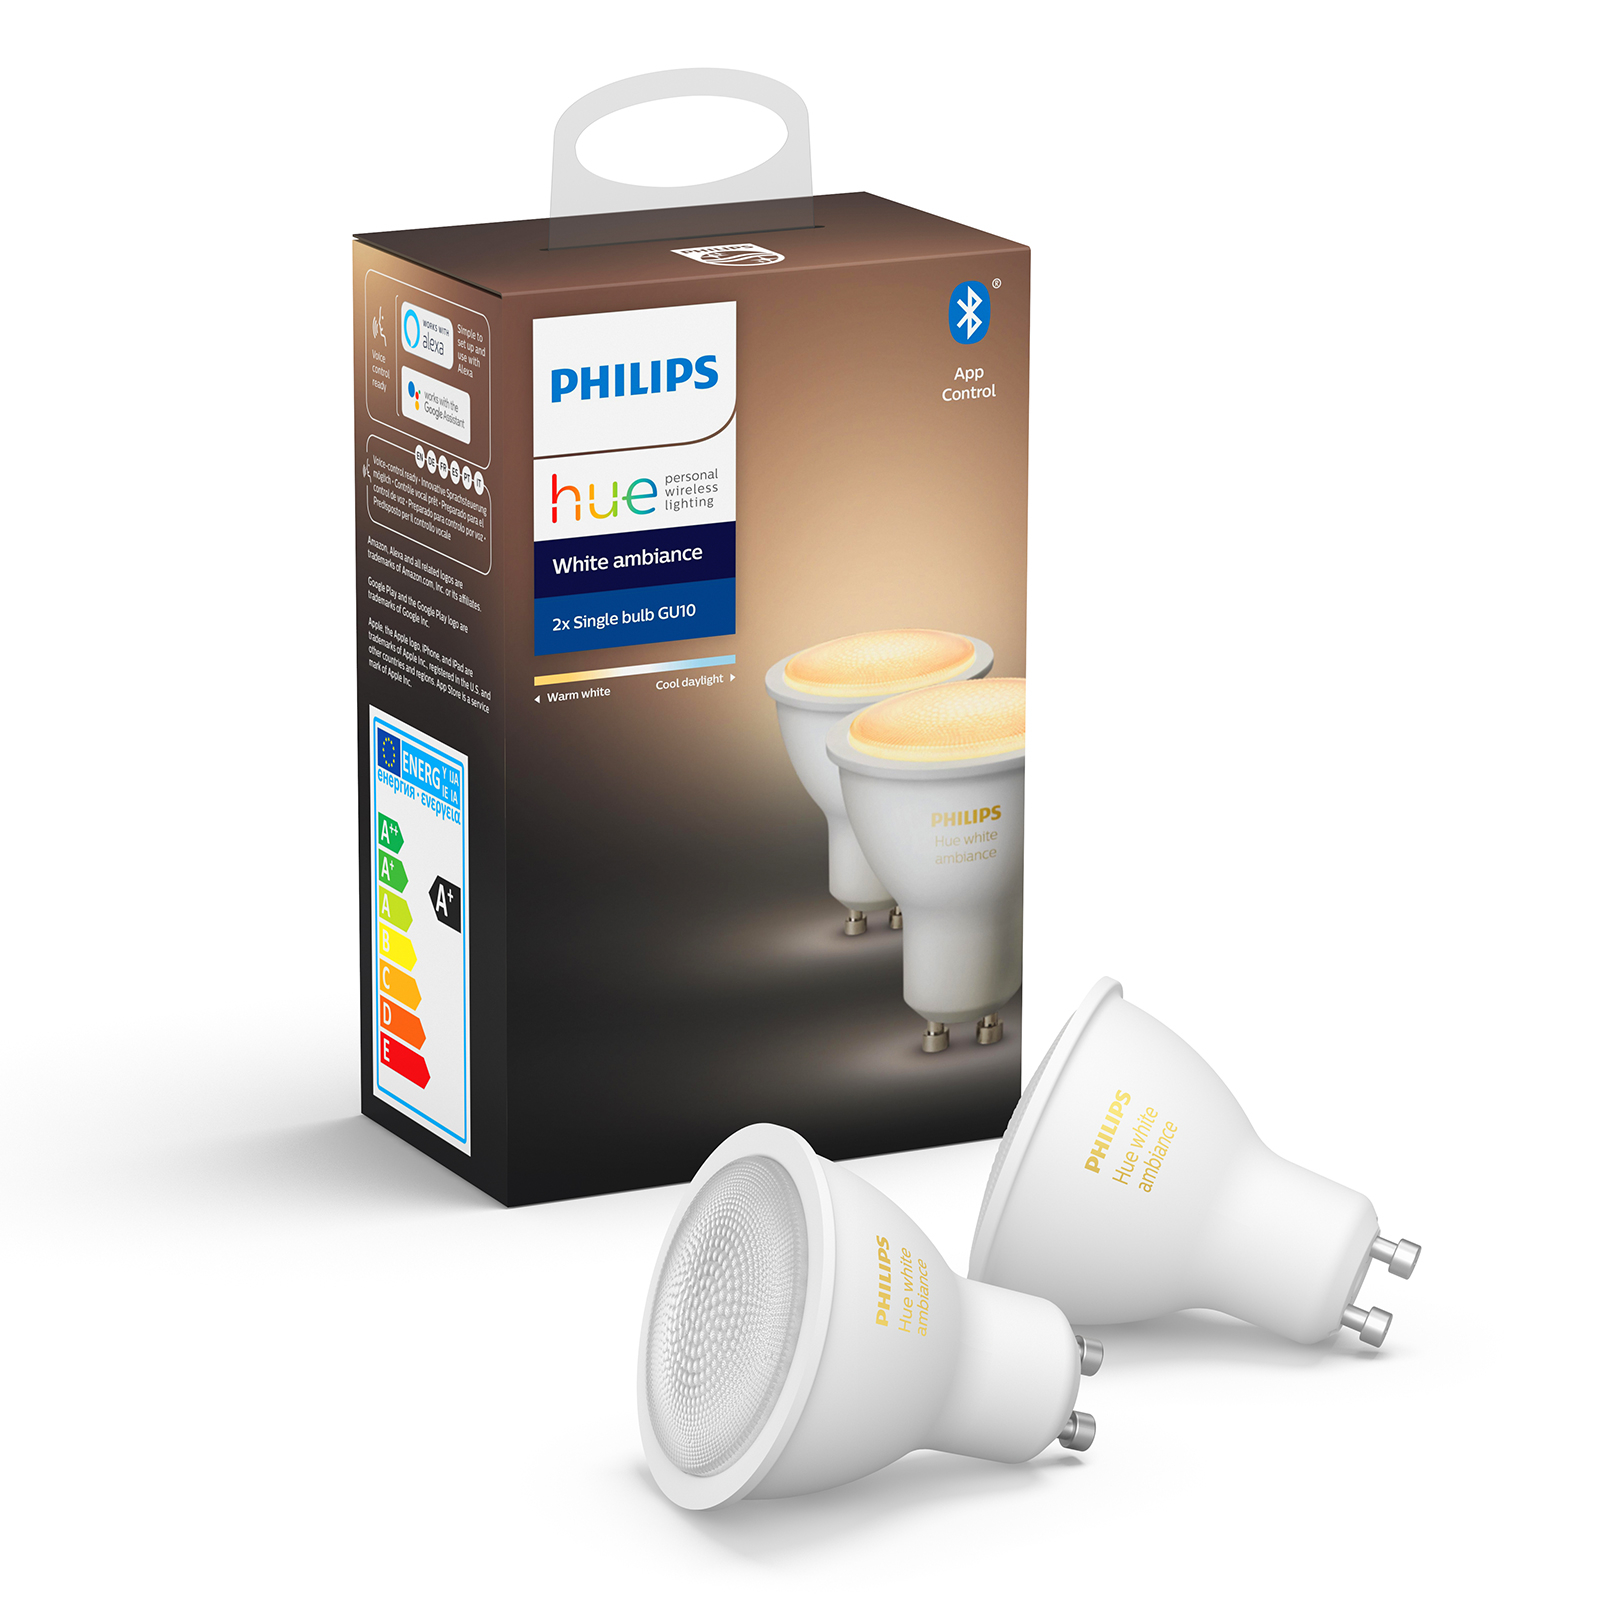 Philips Hue White Ambiance 5 W GU10 LED, set van 2